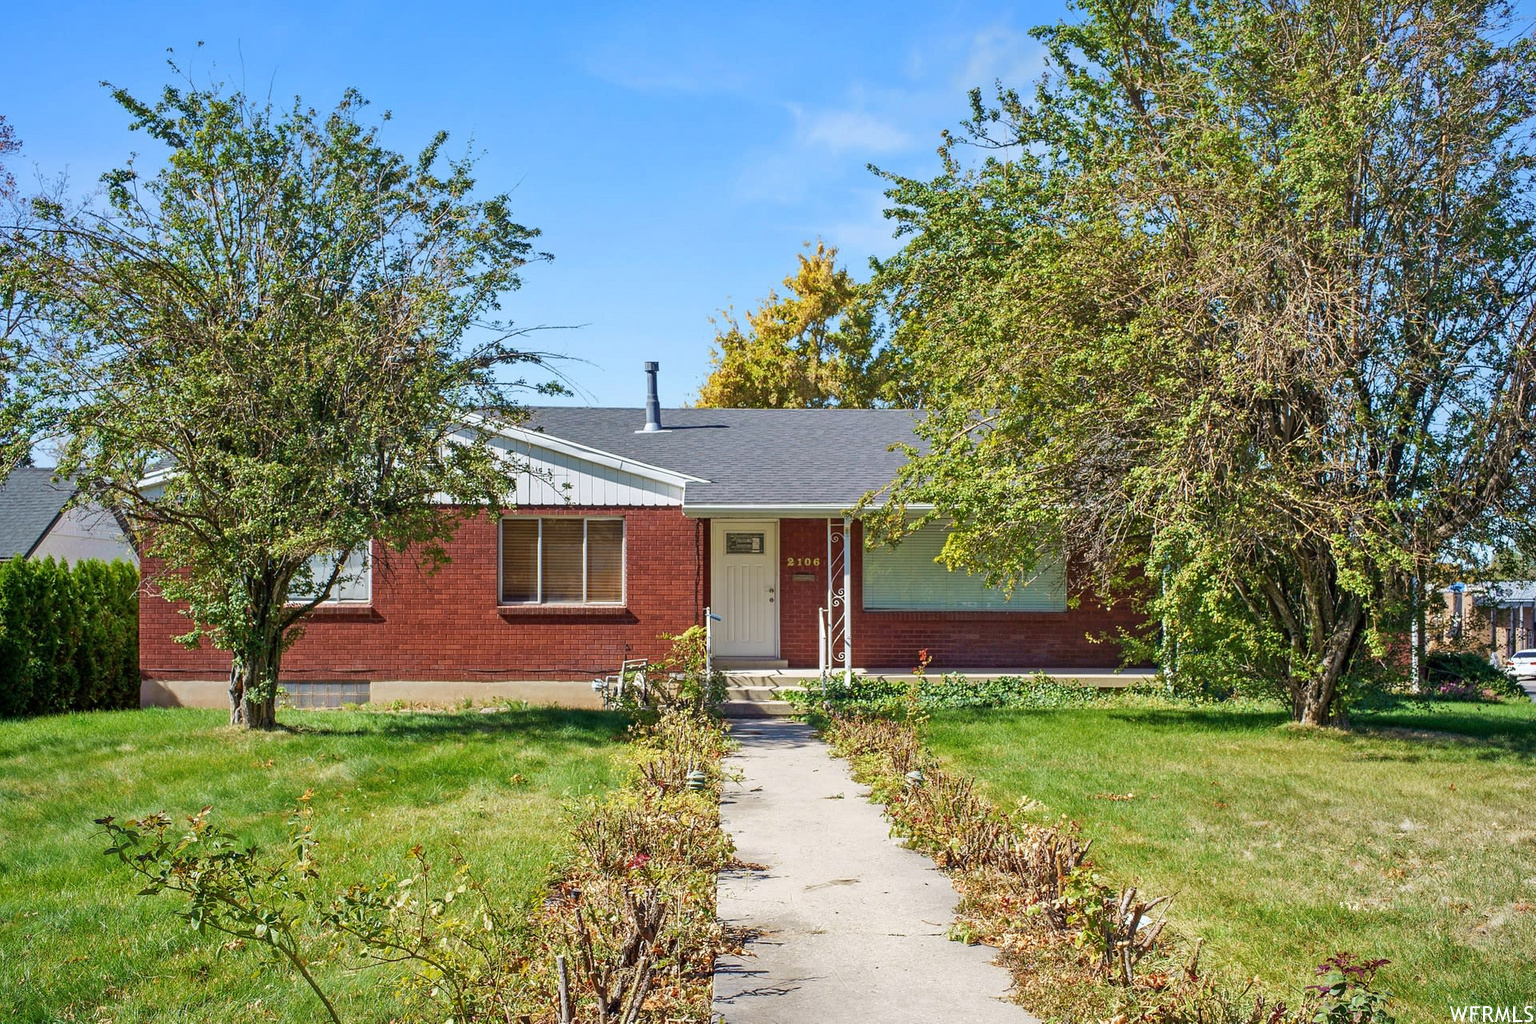 2106 S 2200 E, Salt Lake City UT 84109